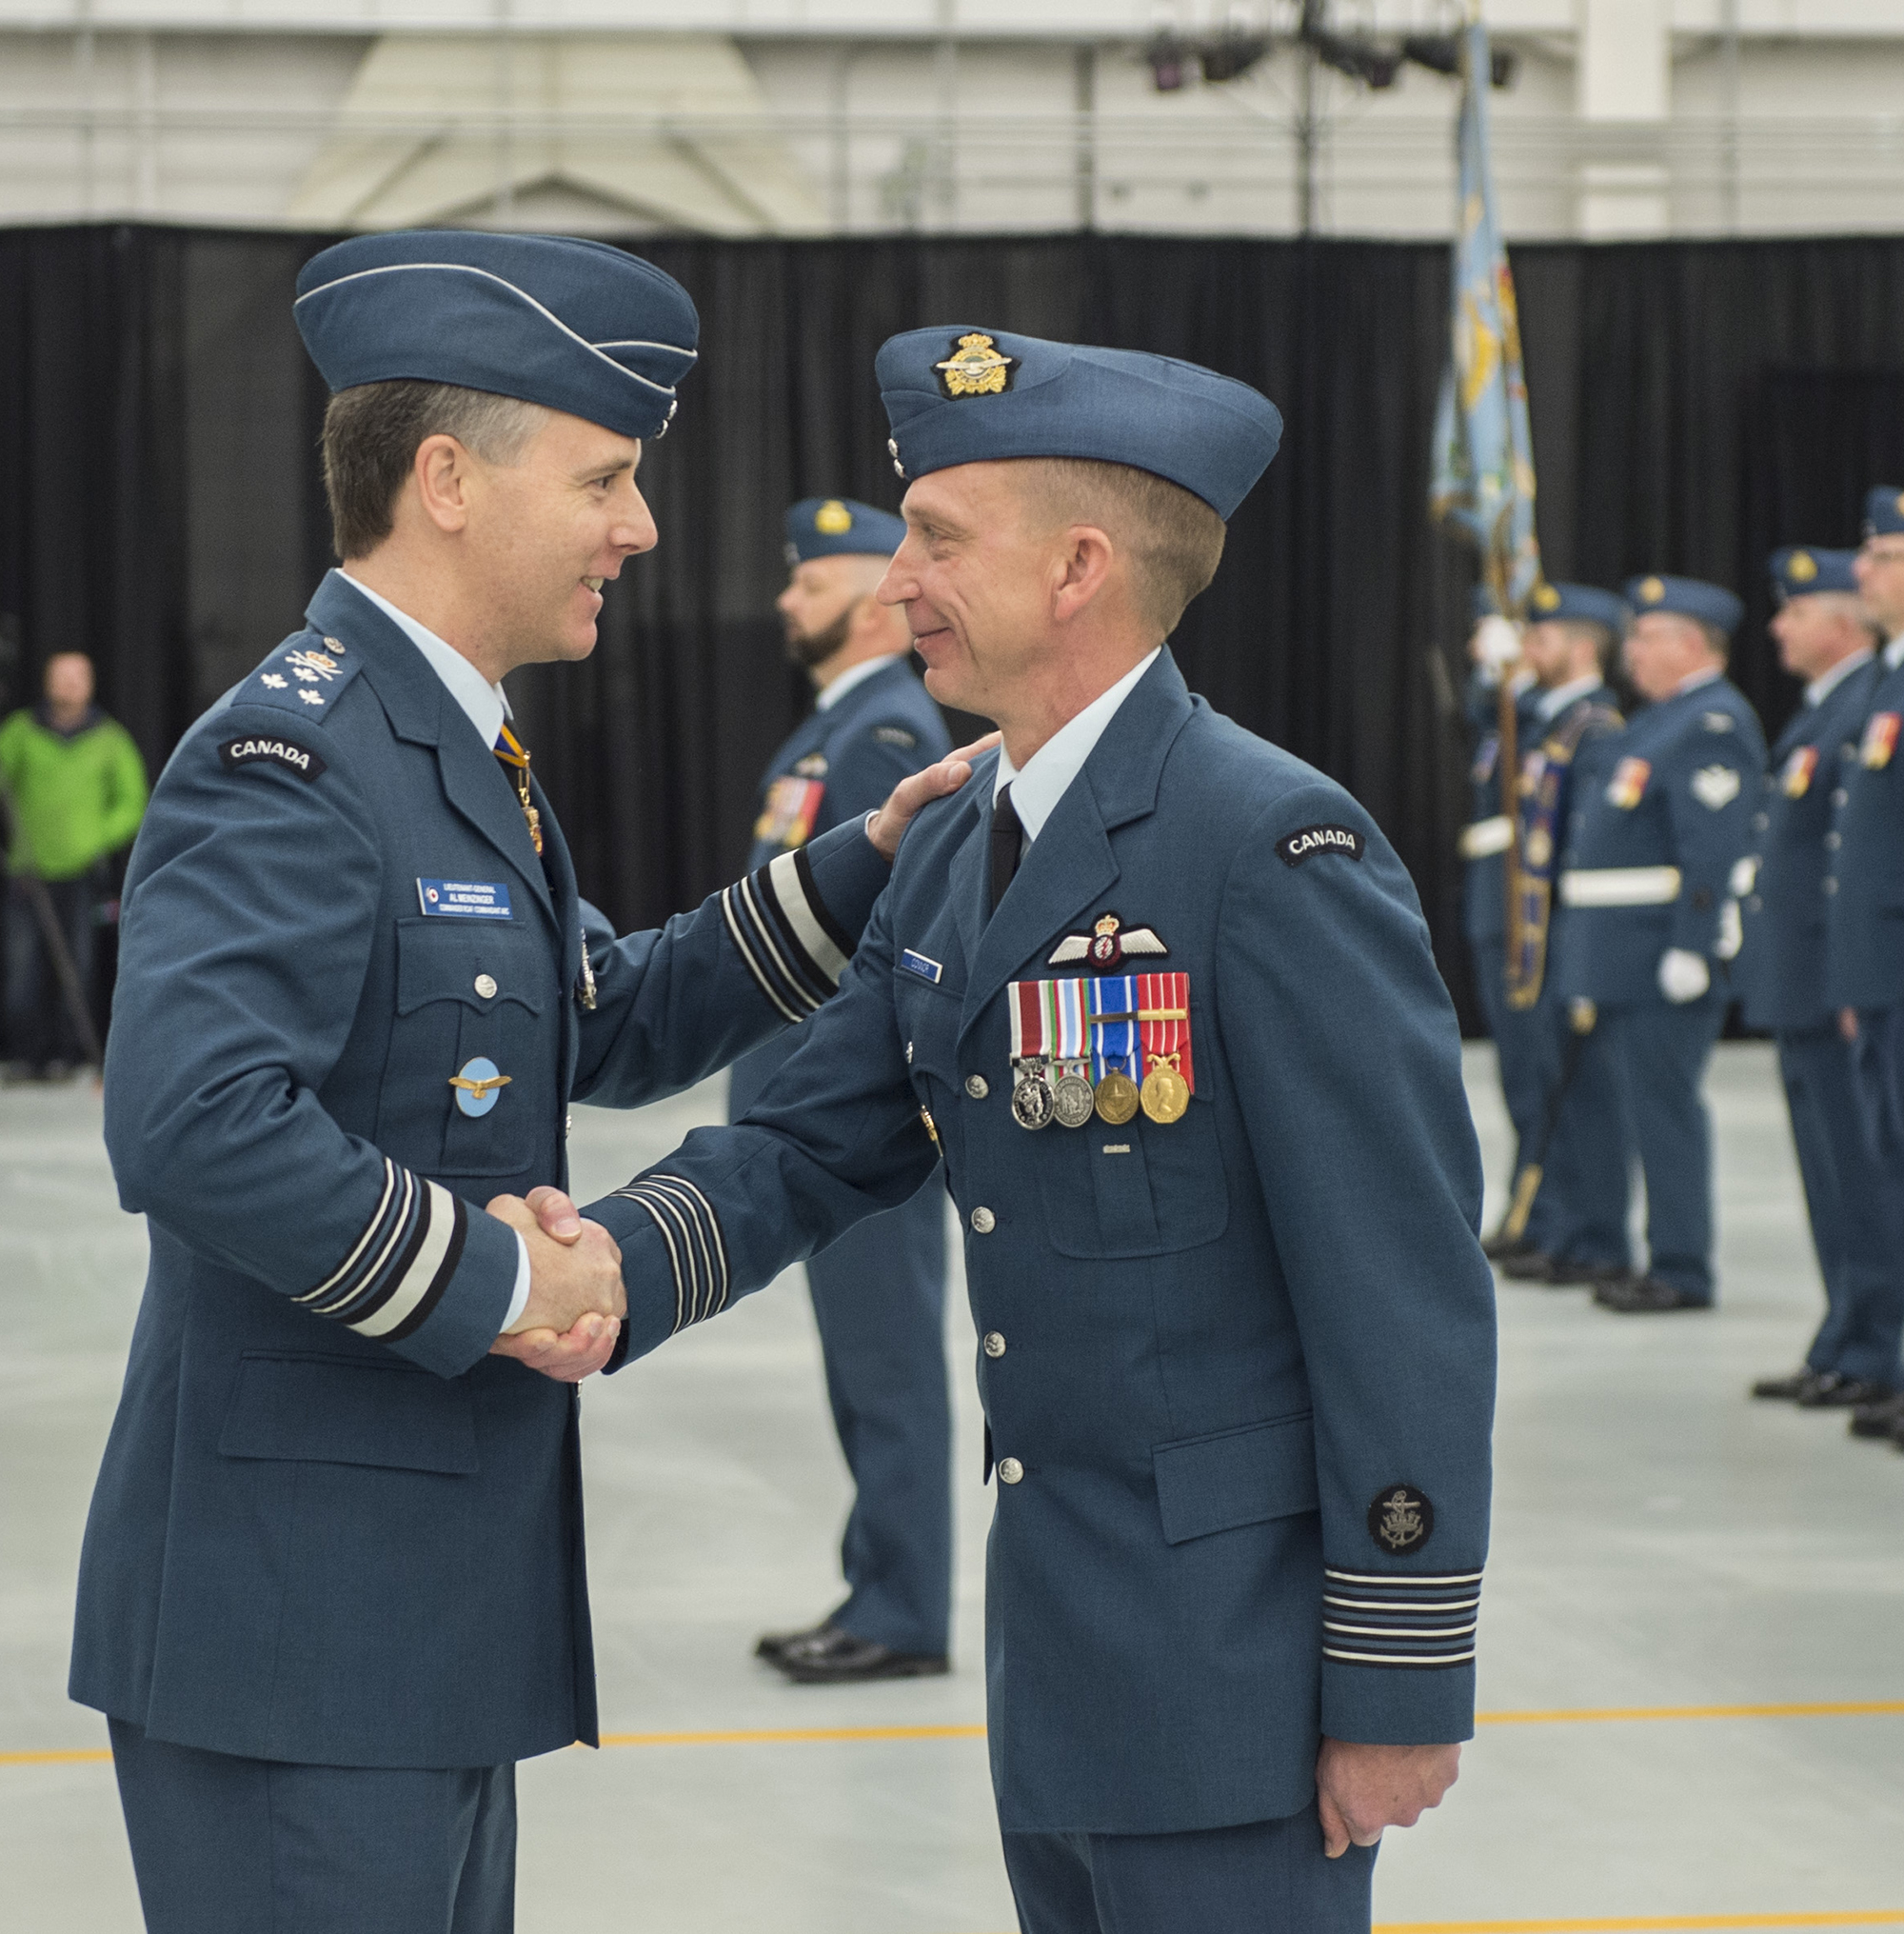 Lieutenant-General Al Meinzinger, commander of the RCAF, shakes hands with Colonel Sid Connor, commander of 12 Wing Shearwater, Nova Scotia, during the Sea King retirement ceremony on December 1, 2018. PHOTO: Leading Seaman Laurance Clarke, SW05-2018-0497-640